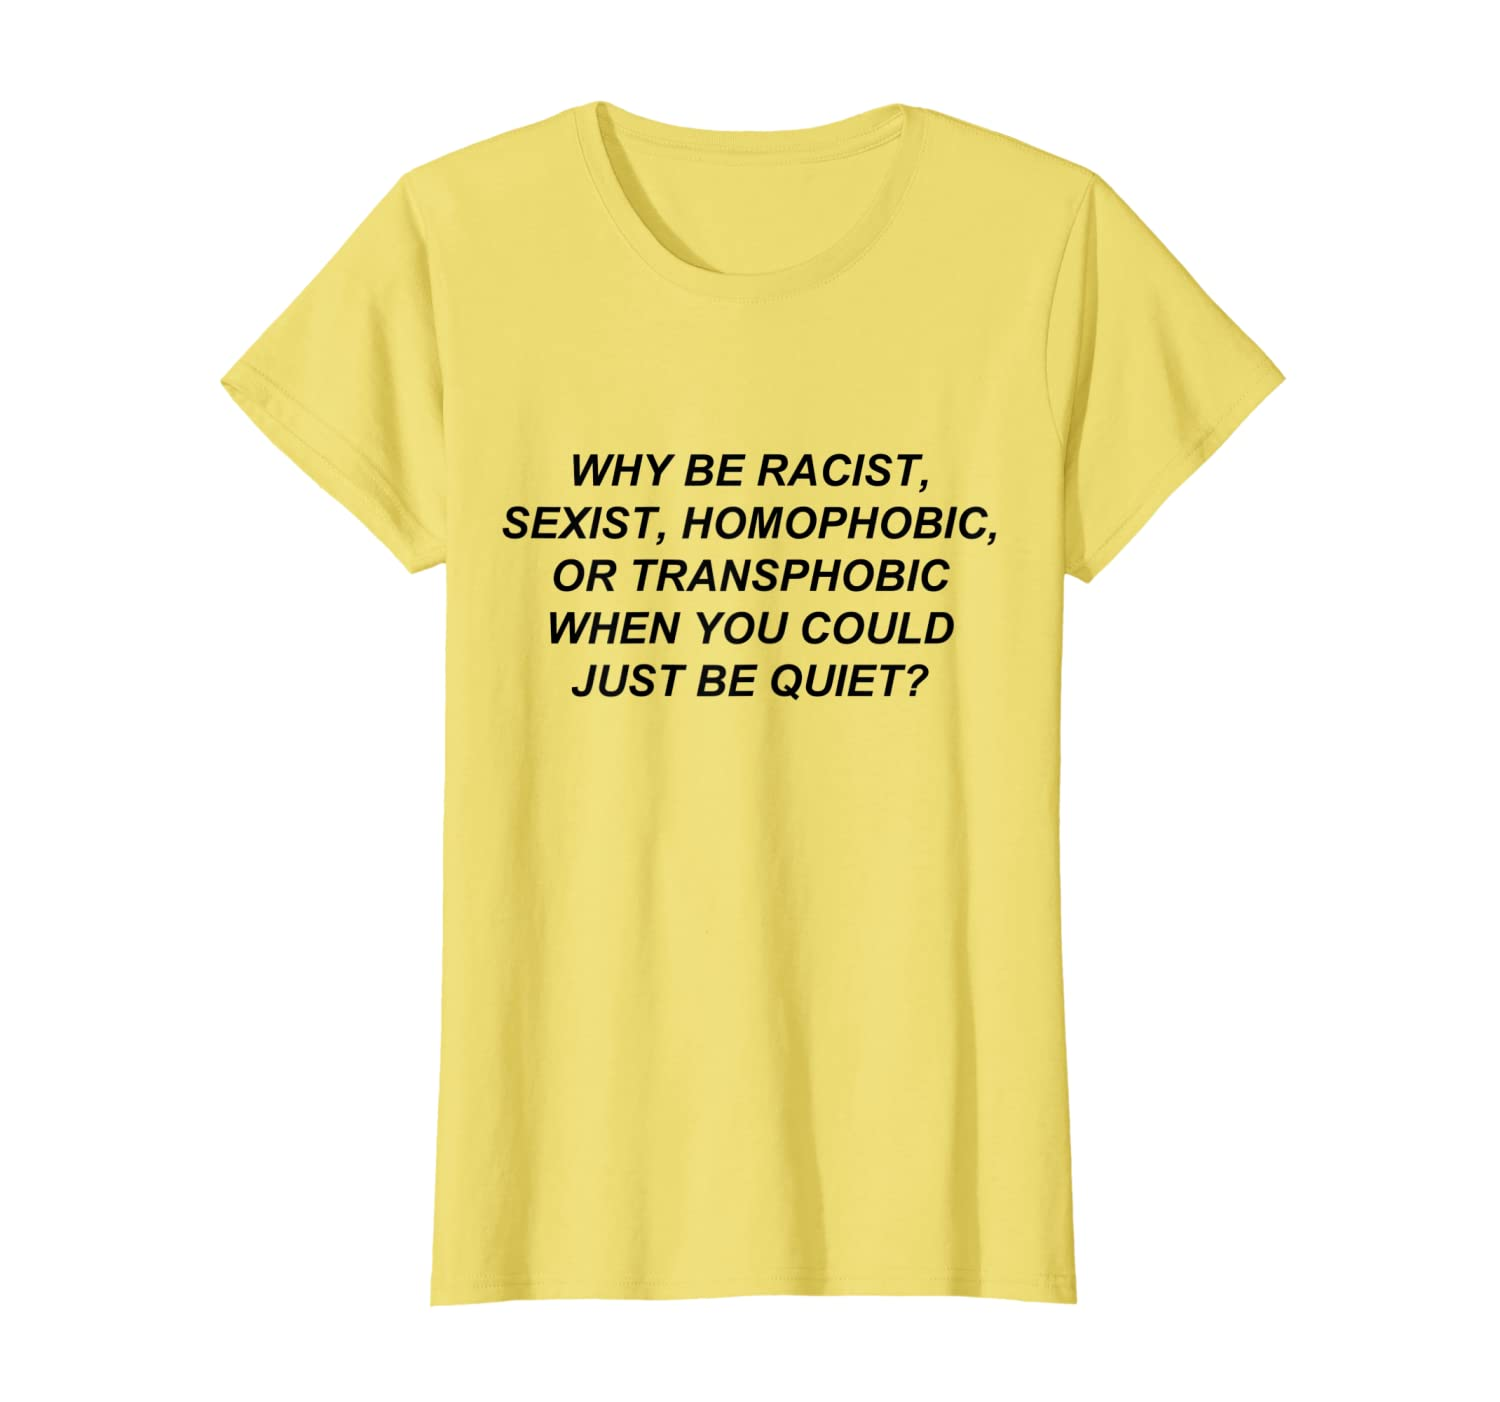 666d54c70 Amazon.com: Why Be Racist When You Could Just Be Quiet T-Shirt: Clothing